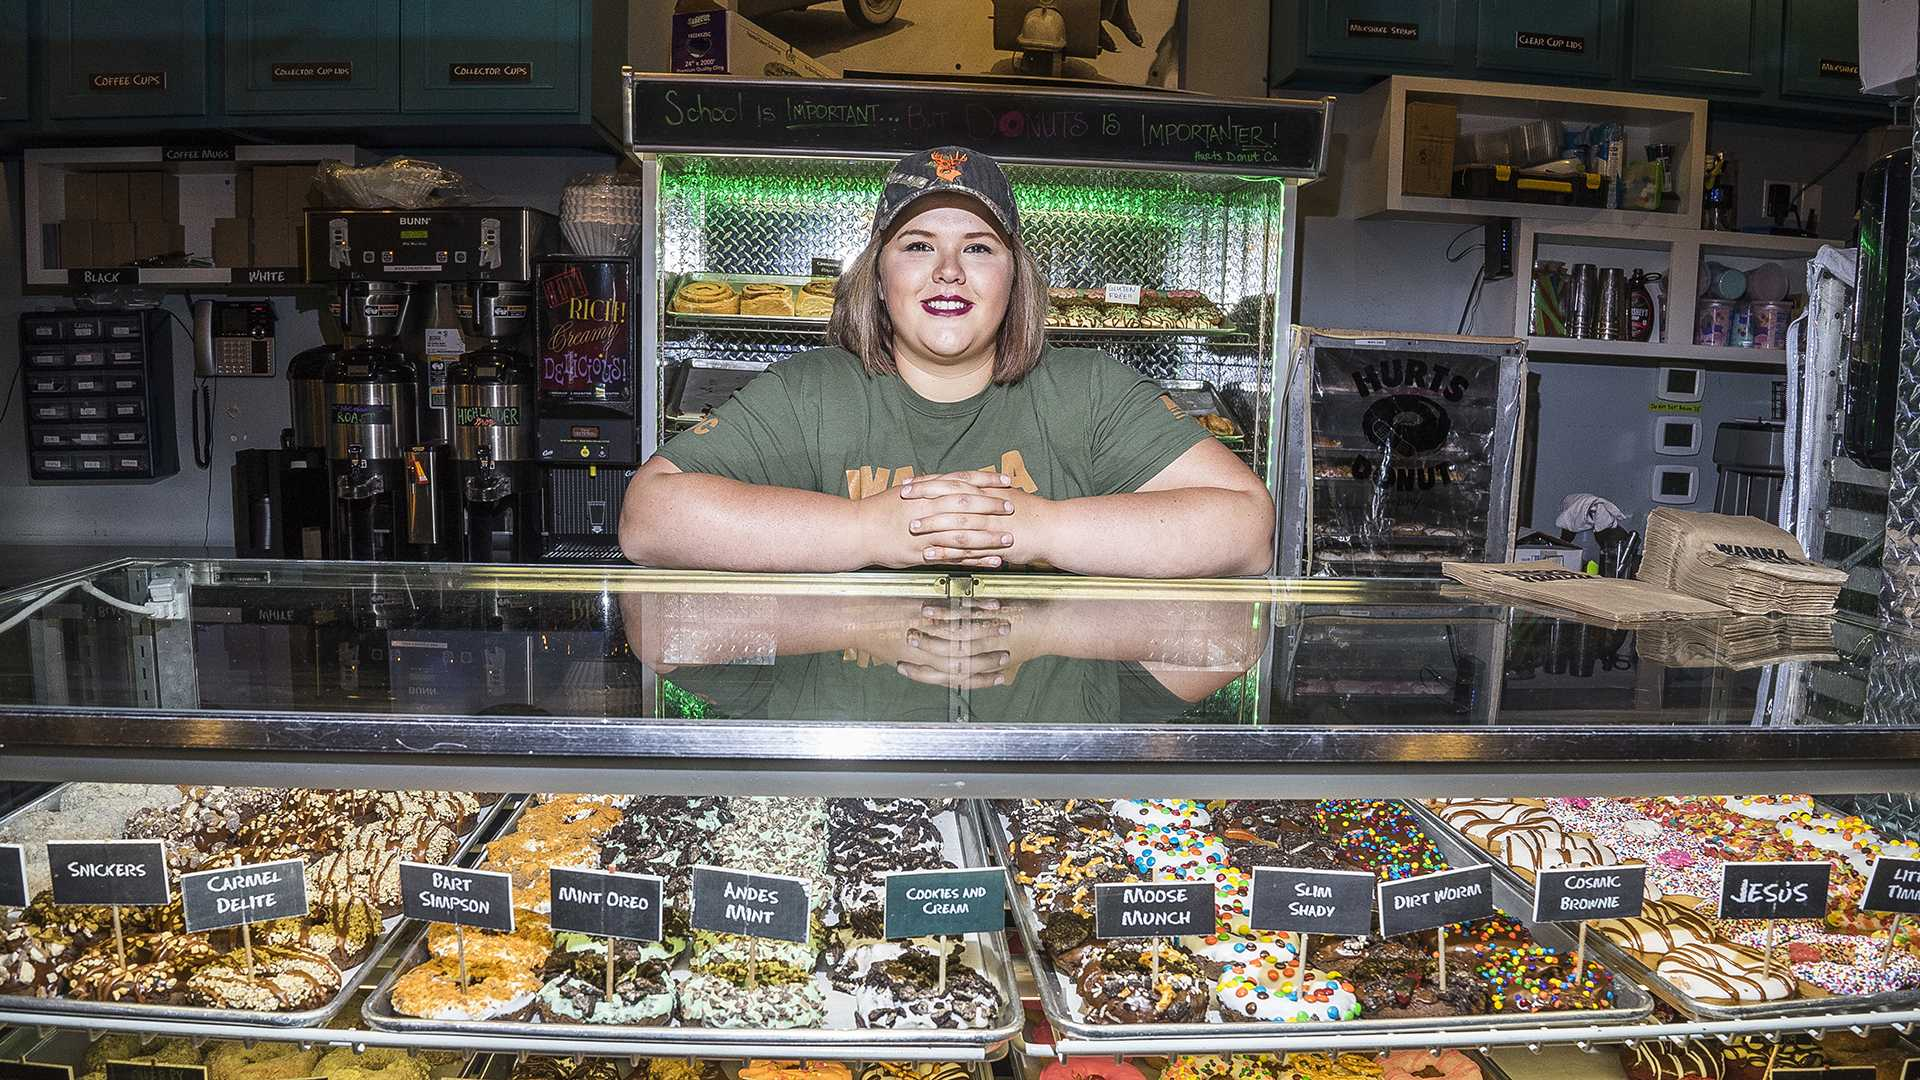 UI student Courtney Otradovec works at Hurts Doughnut on Wednesday, Oct. 11, 2017. The company offers a clown-based delivery service during the month of October. (James Year/The Daily Iowan)